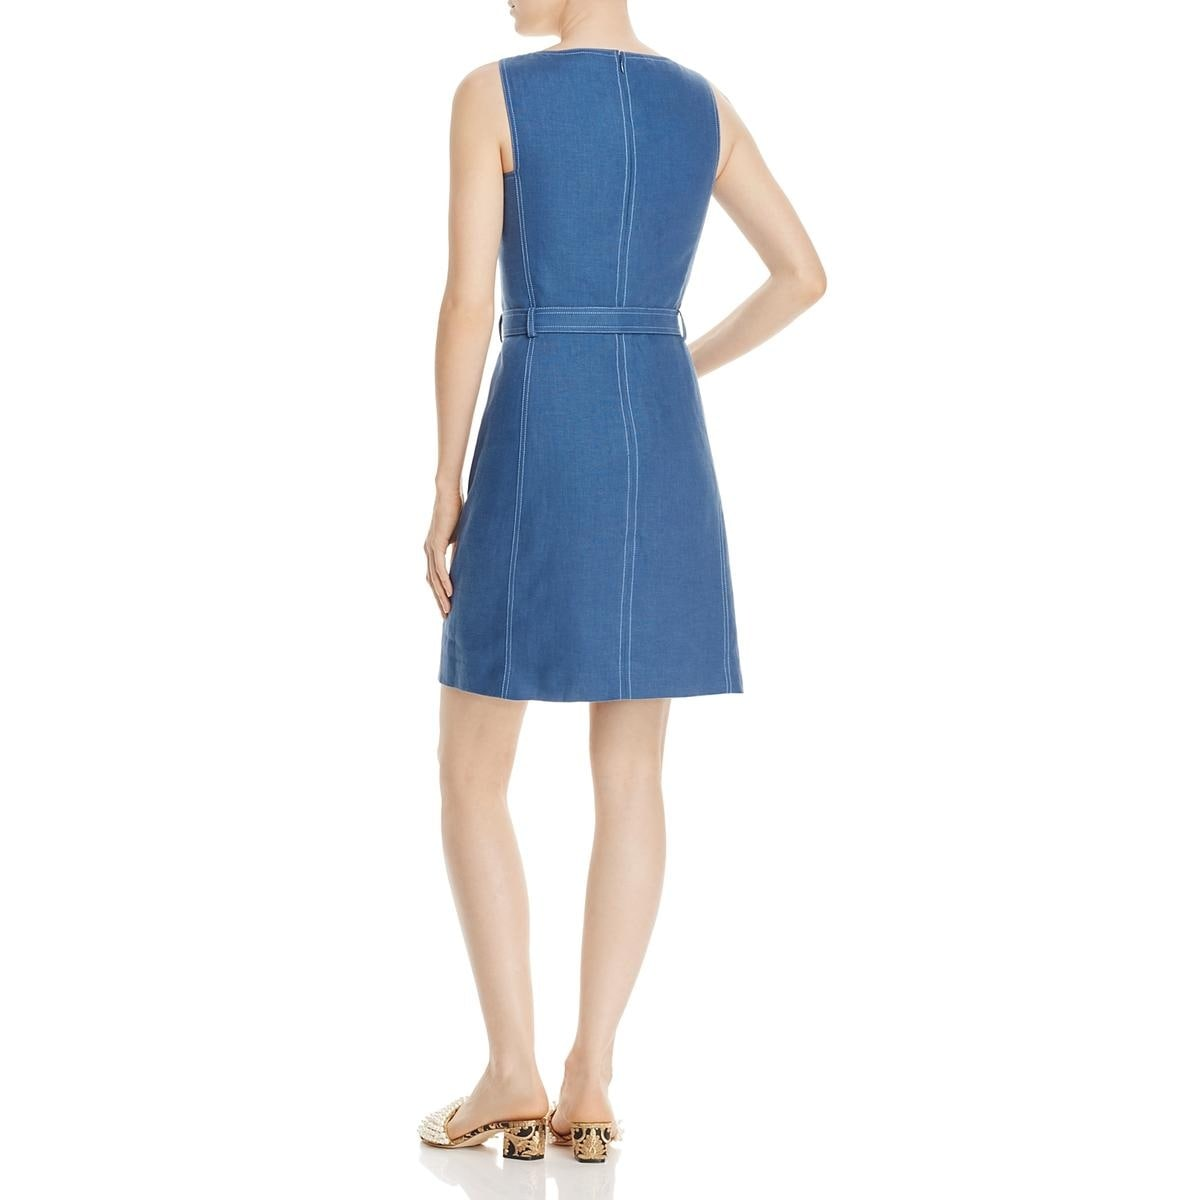 bc99987426c Shop Tory Burch Womens Nadia Casual Dress Linen Belted - 14 - Free ...